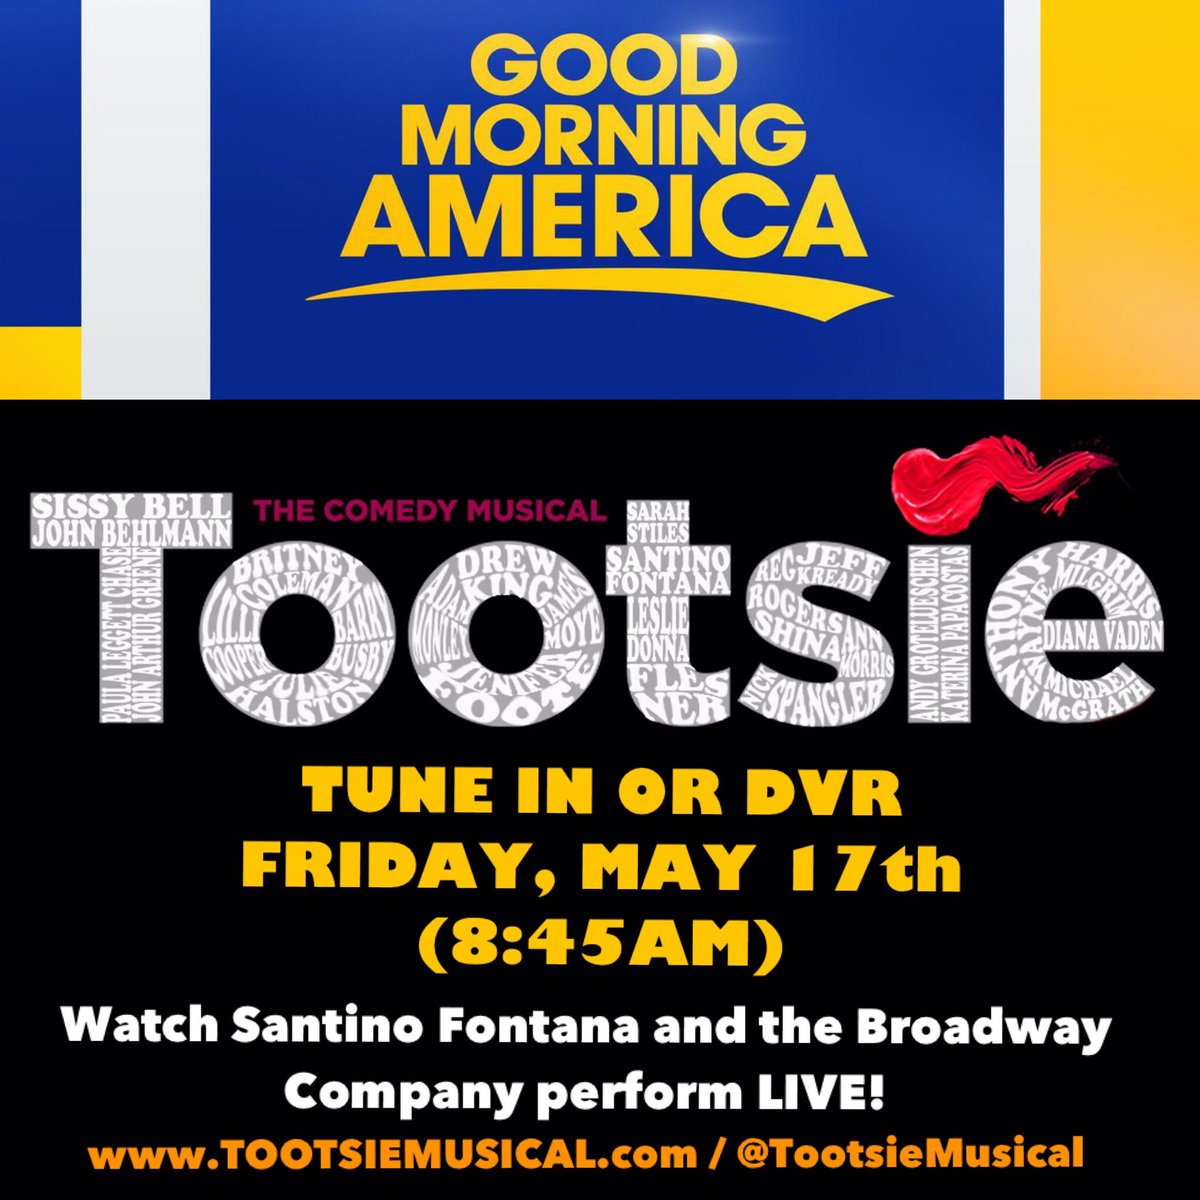 Tune in tomorrow for some @TootsieMusical magic!